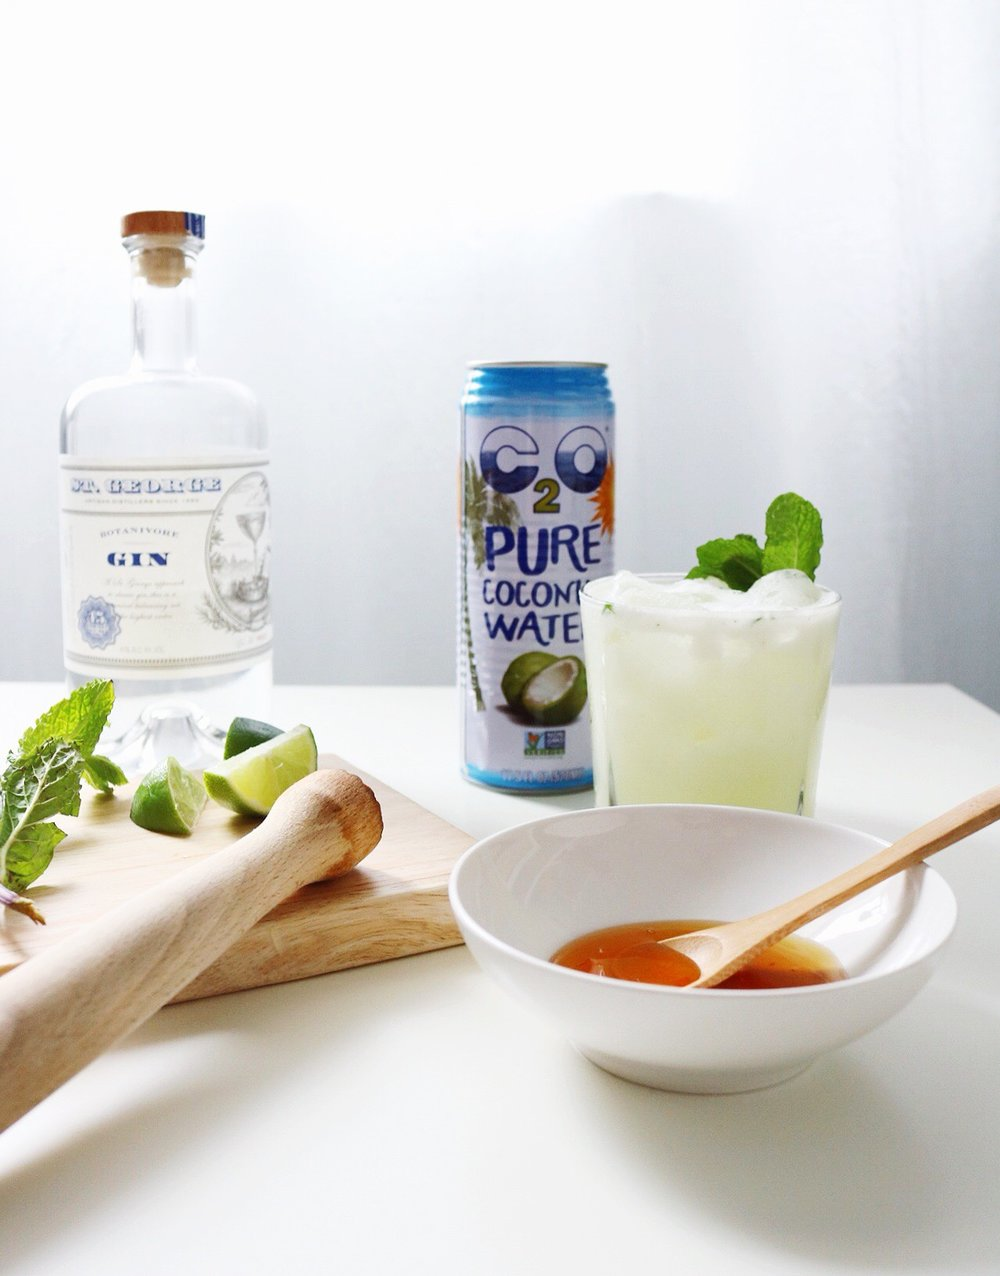 Honey Water Muddled Lime Mint C20 Coconut Water Coconut Cream St. George Gin Cocktail